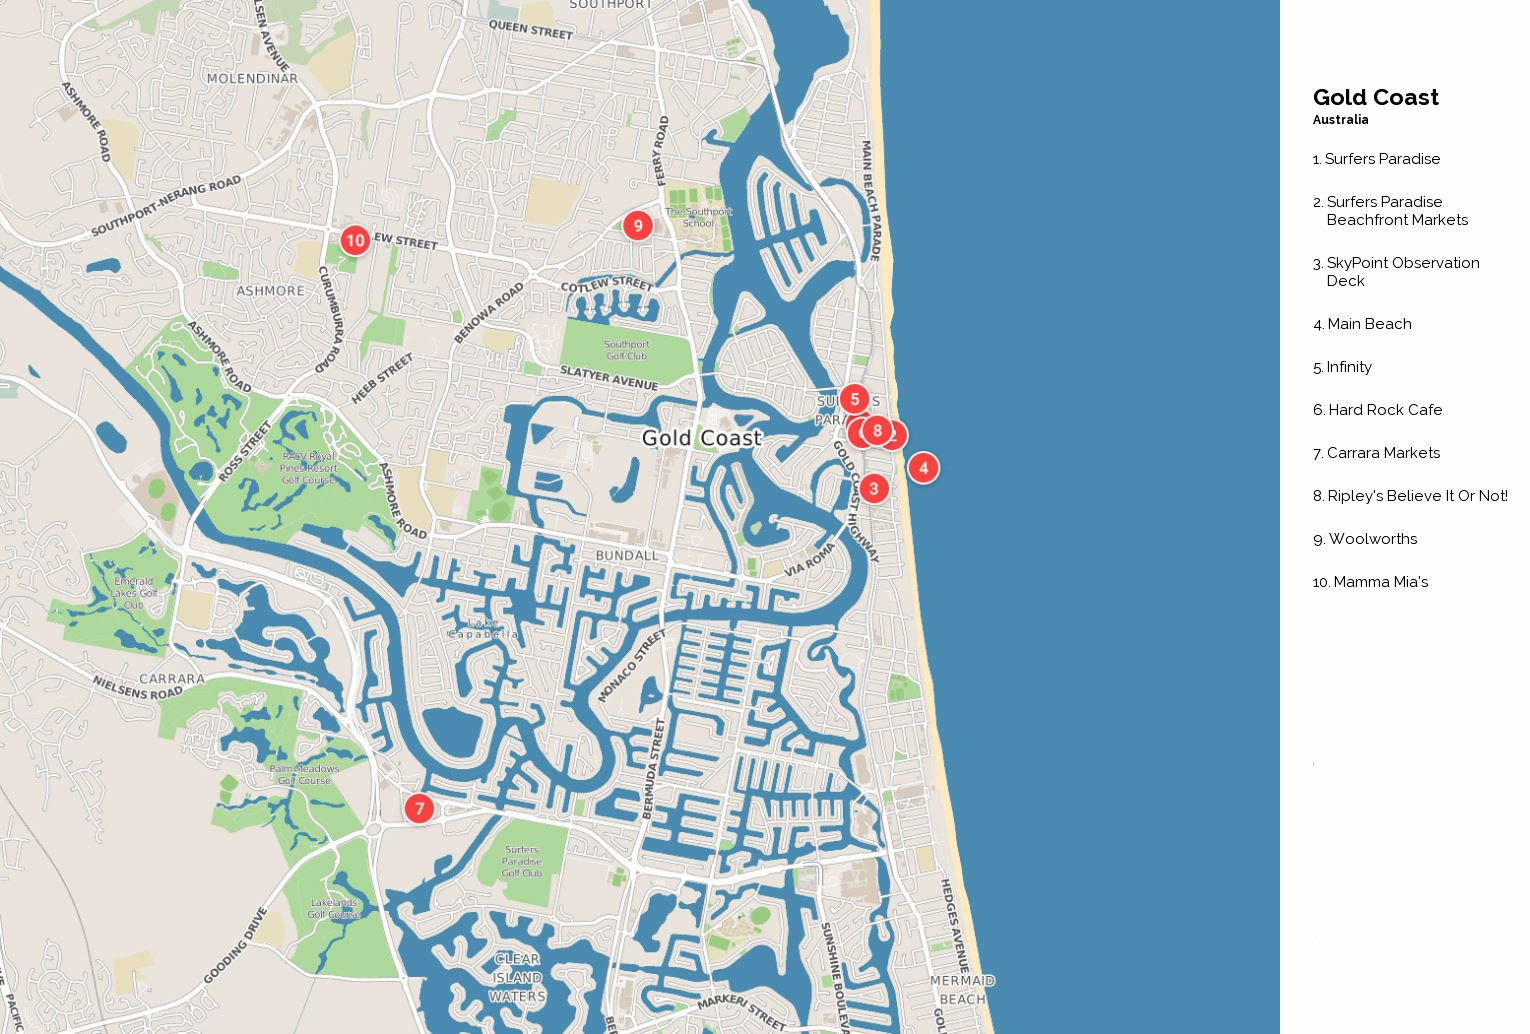 Large Gold Coast Maps For Free Download And Print High Resolution